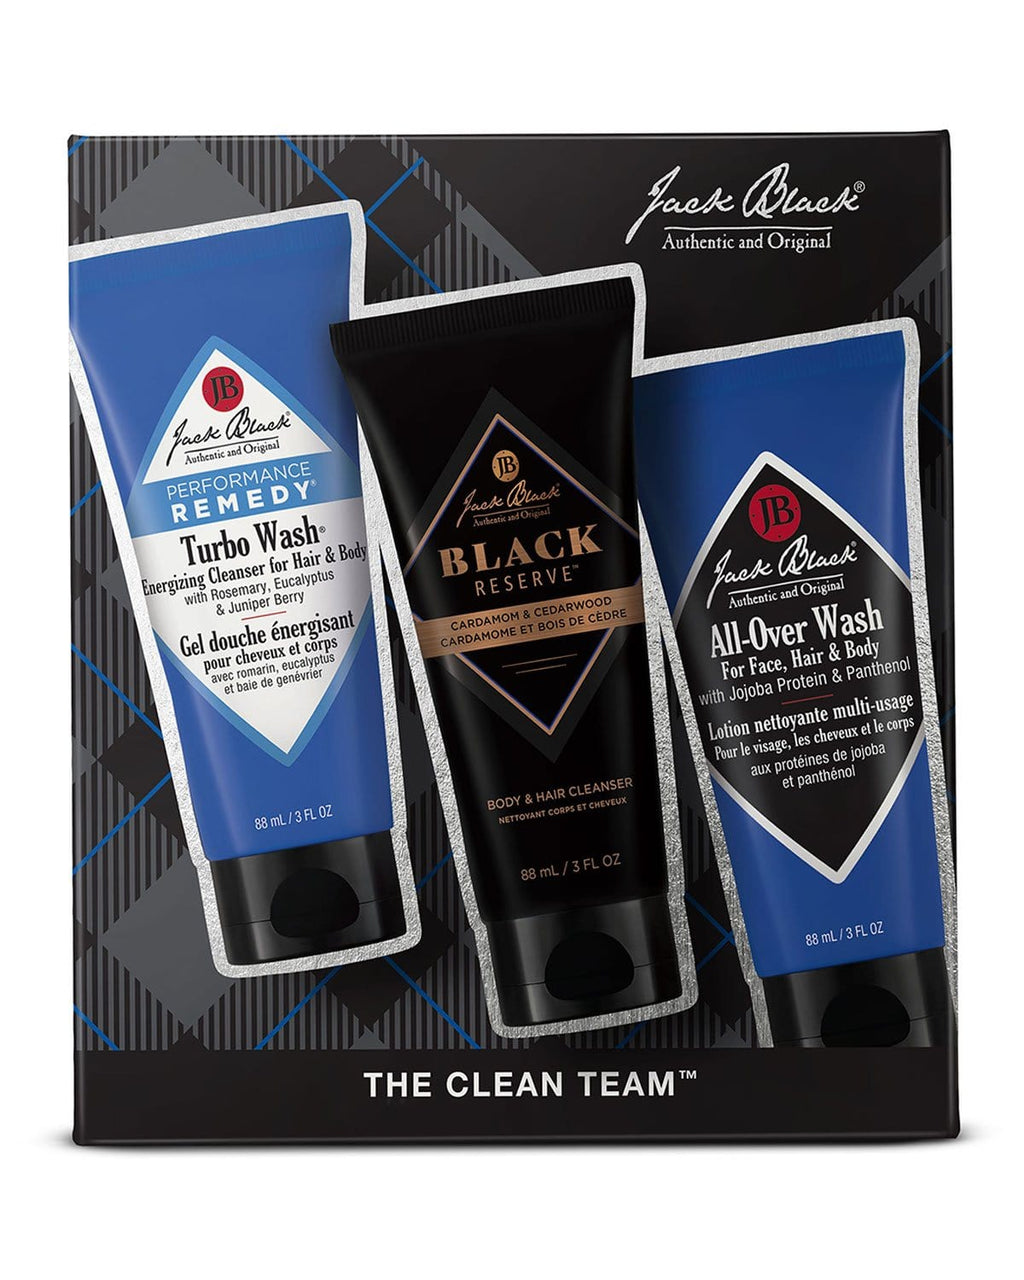 Jack Black Skincare Set The Clean Team™ with Turbo Wash®, All-Over Wash & Black Reserve™ Cleanser